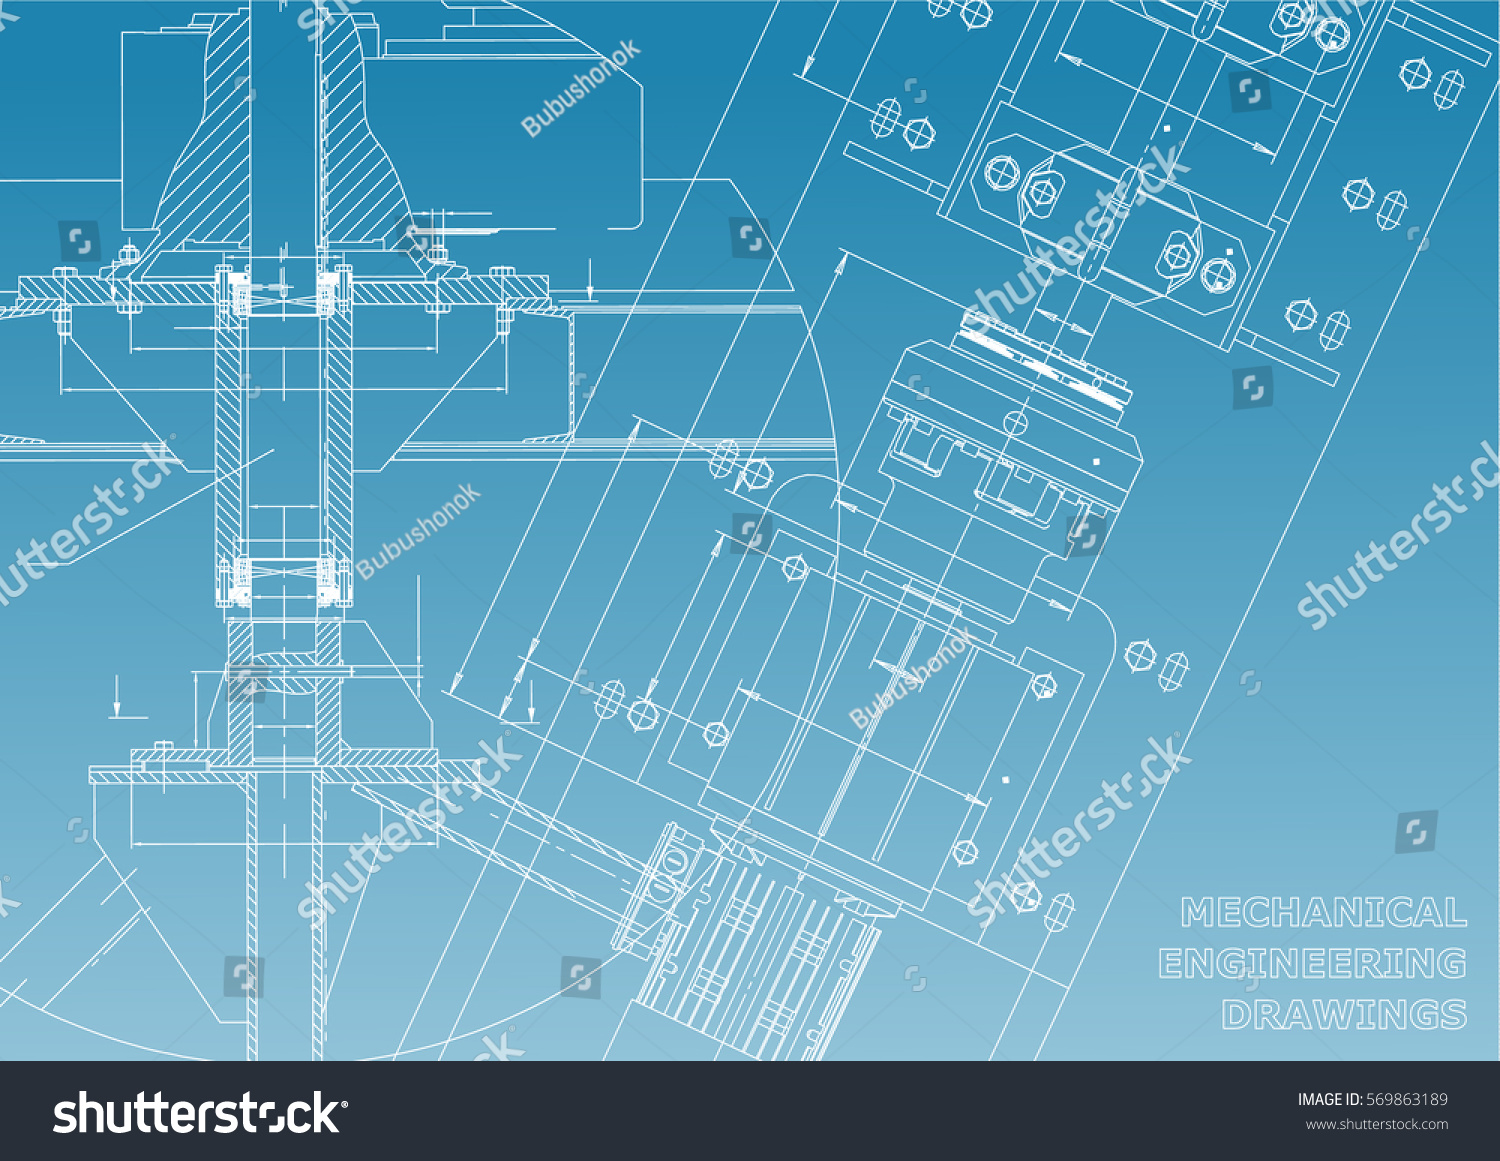 Mechanical engineering drawings technical design for Engineering blueprints